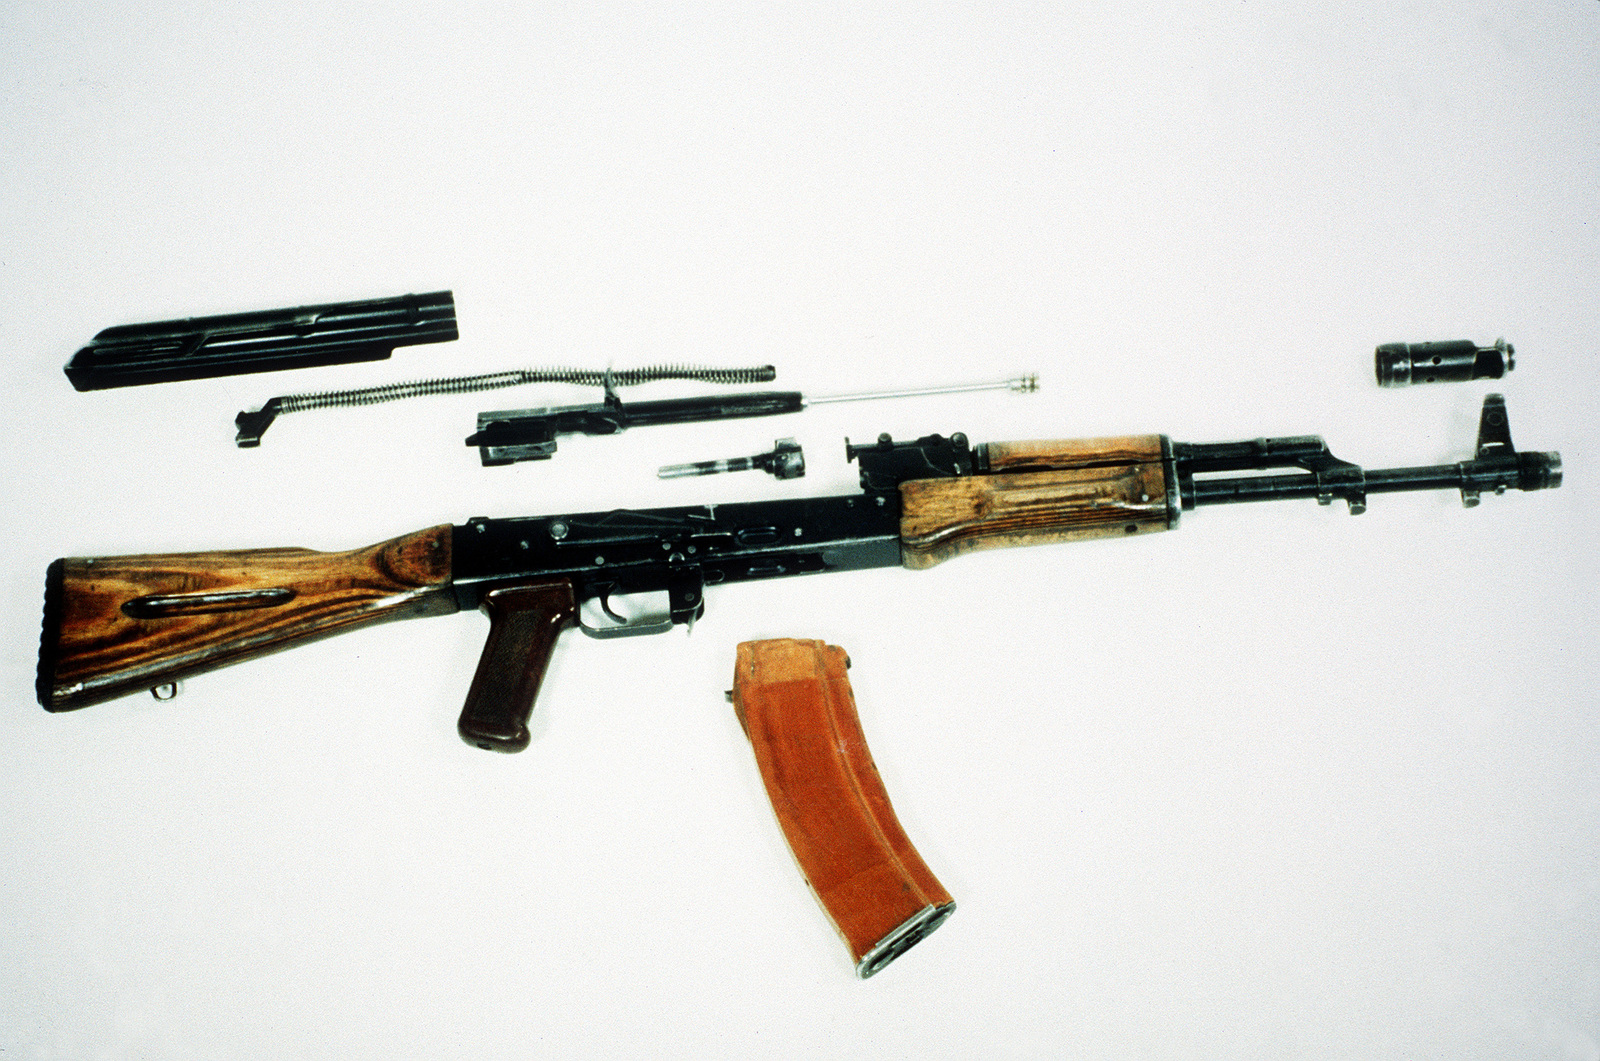 A right side view of a field-stripped Soviet AK-74 assault rifle